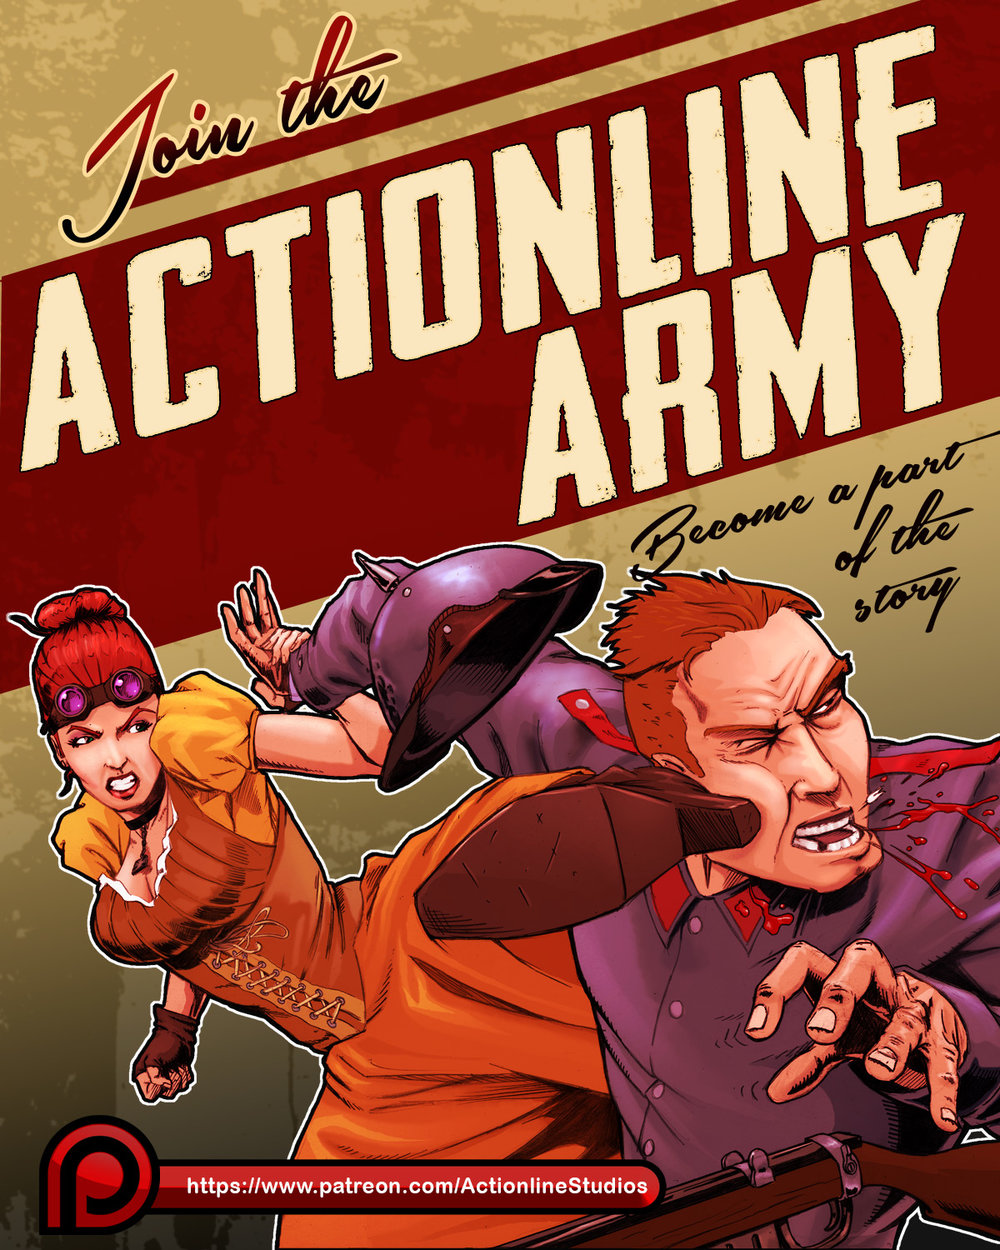 Join the Actionline Studios Patreon to help support indie comics